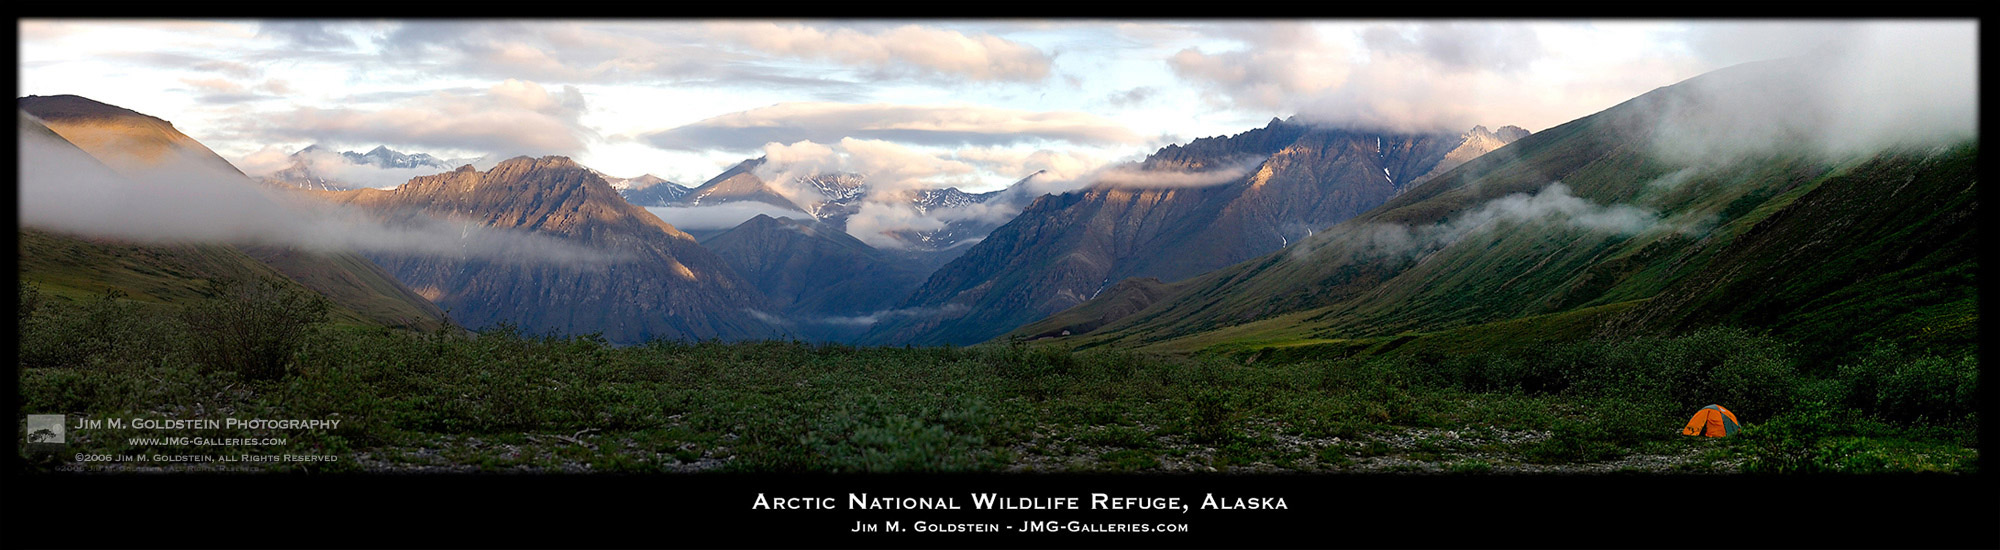 Acrtic National Wildlife Refuge